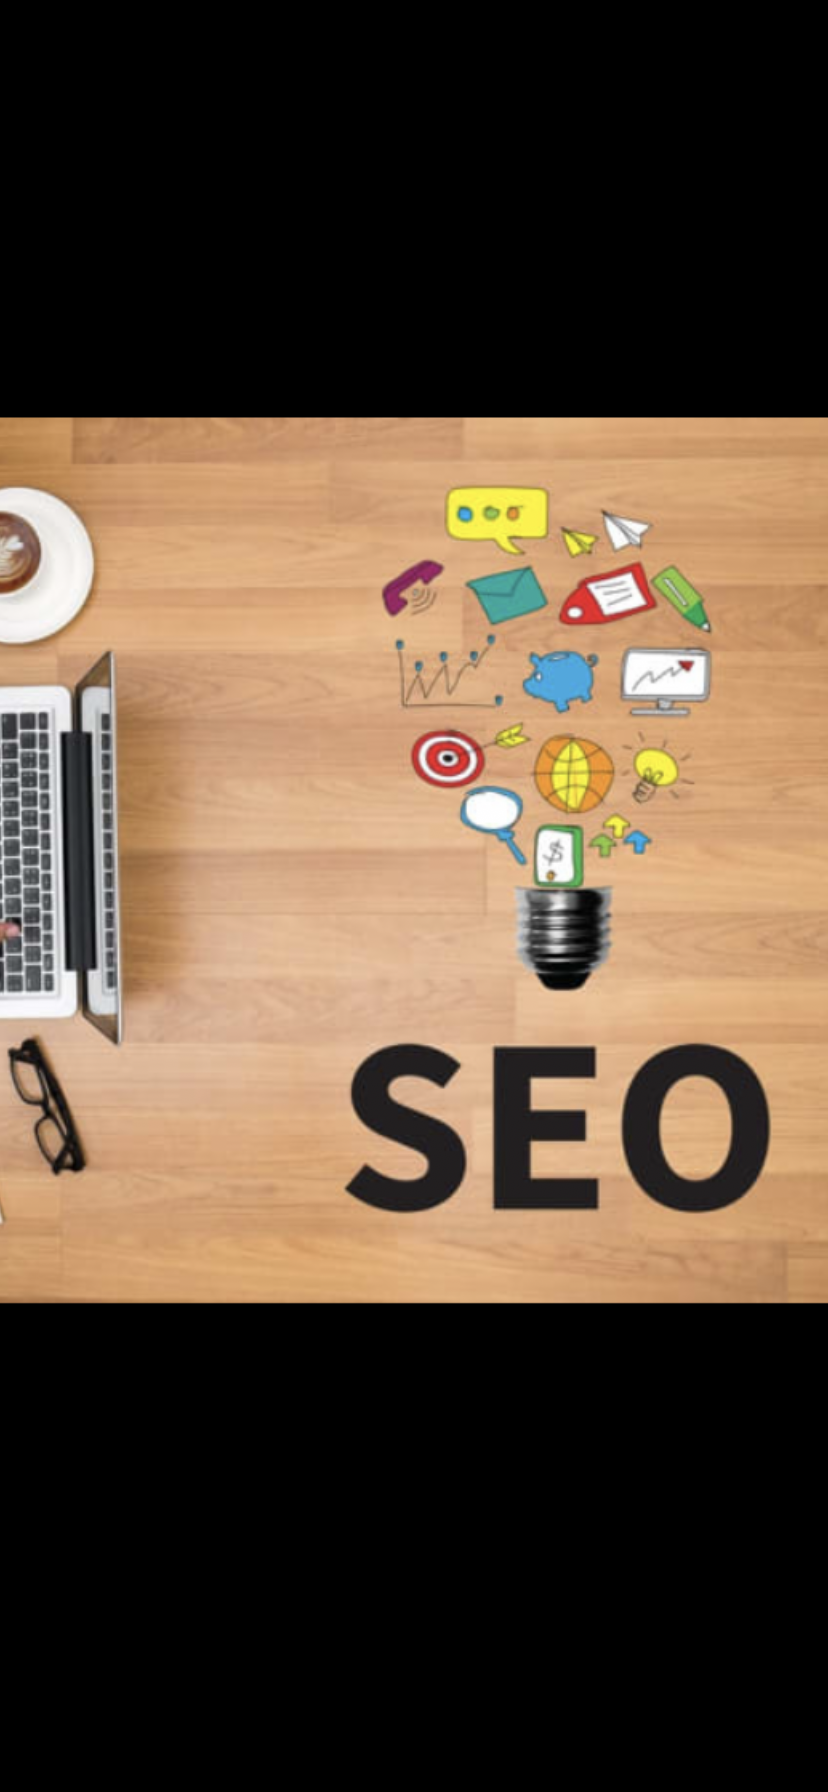 Improve Ranking With 15 white hat tier1 seo backlinks